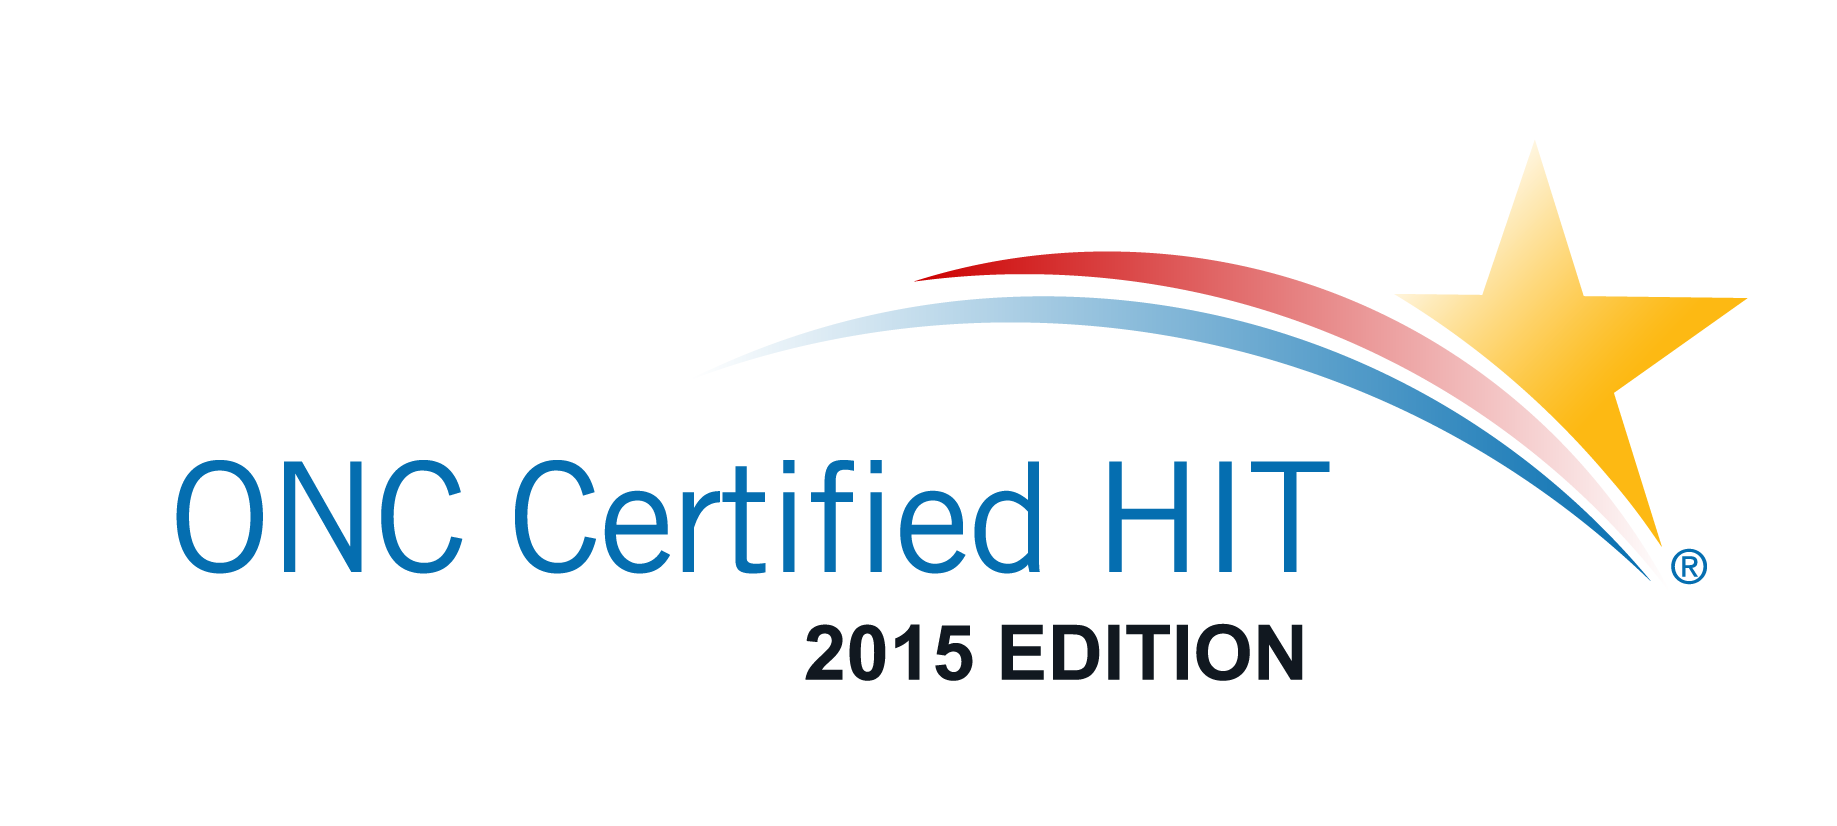 AXEIUM EHR ONC Stage 3 2015 Edition Certification